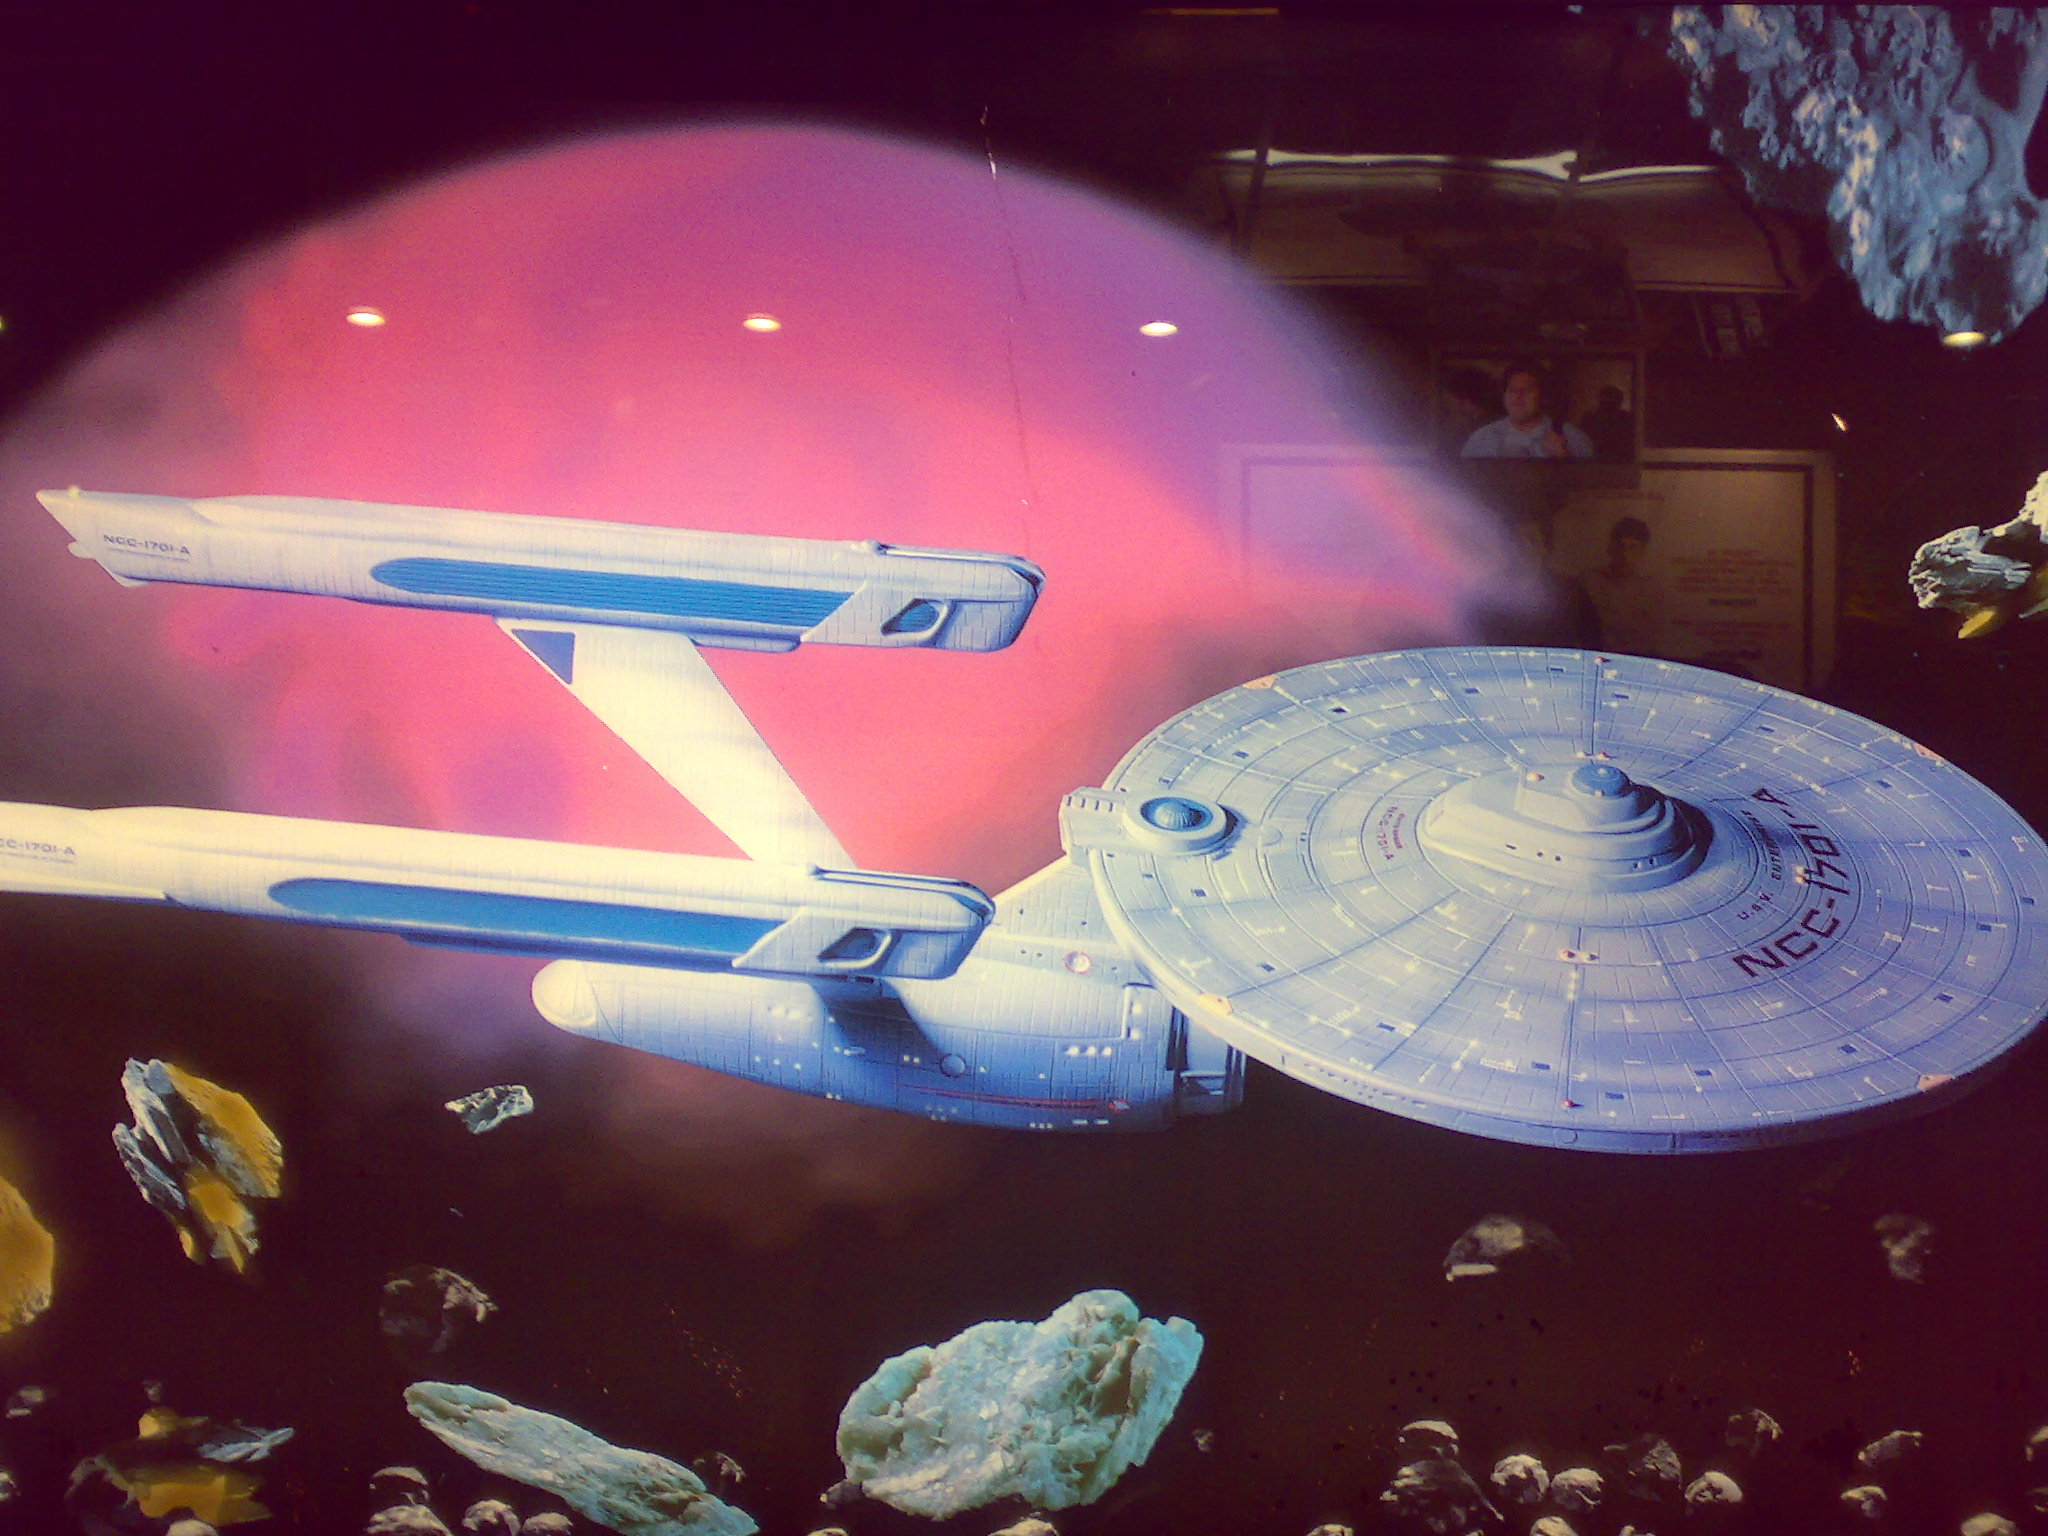 Much-like-the-USS-Enterprise-in-Star-Trek-Mobile-Operators-must-go-where-no-one-has-gone-before-in-search-of-customers-April-07-2014